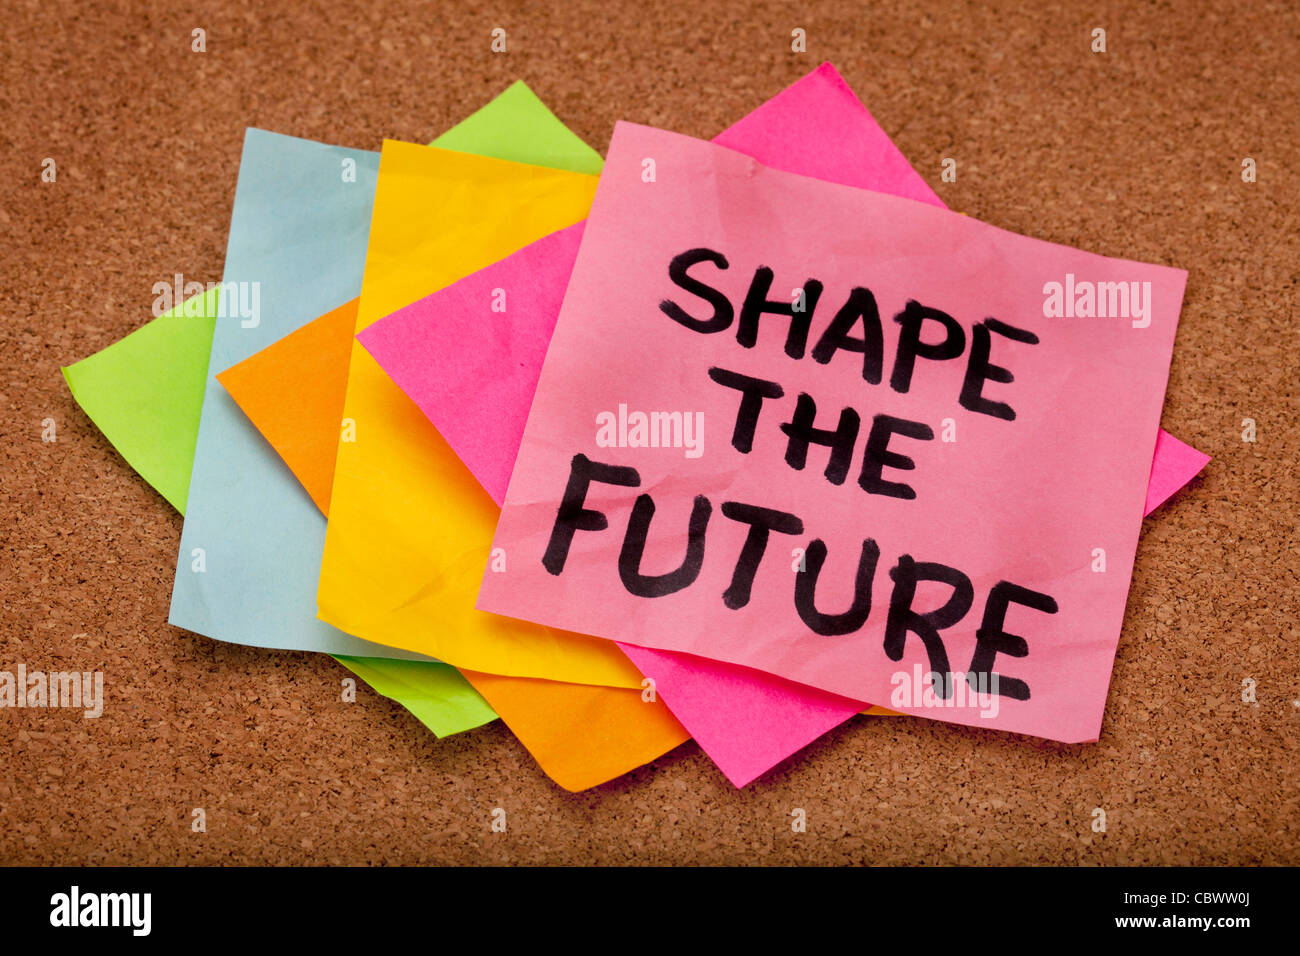 shape the future, motivational slogan, colorful sticky notes on cork bulletin board - Stock Image